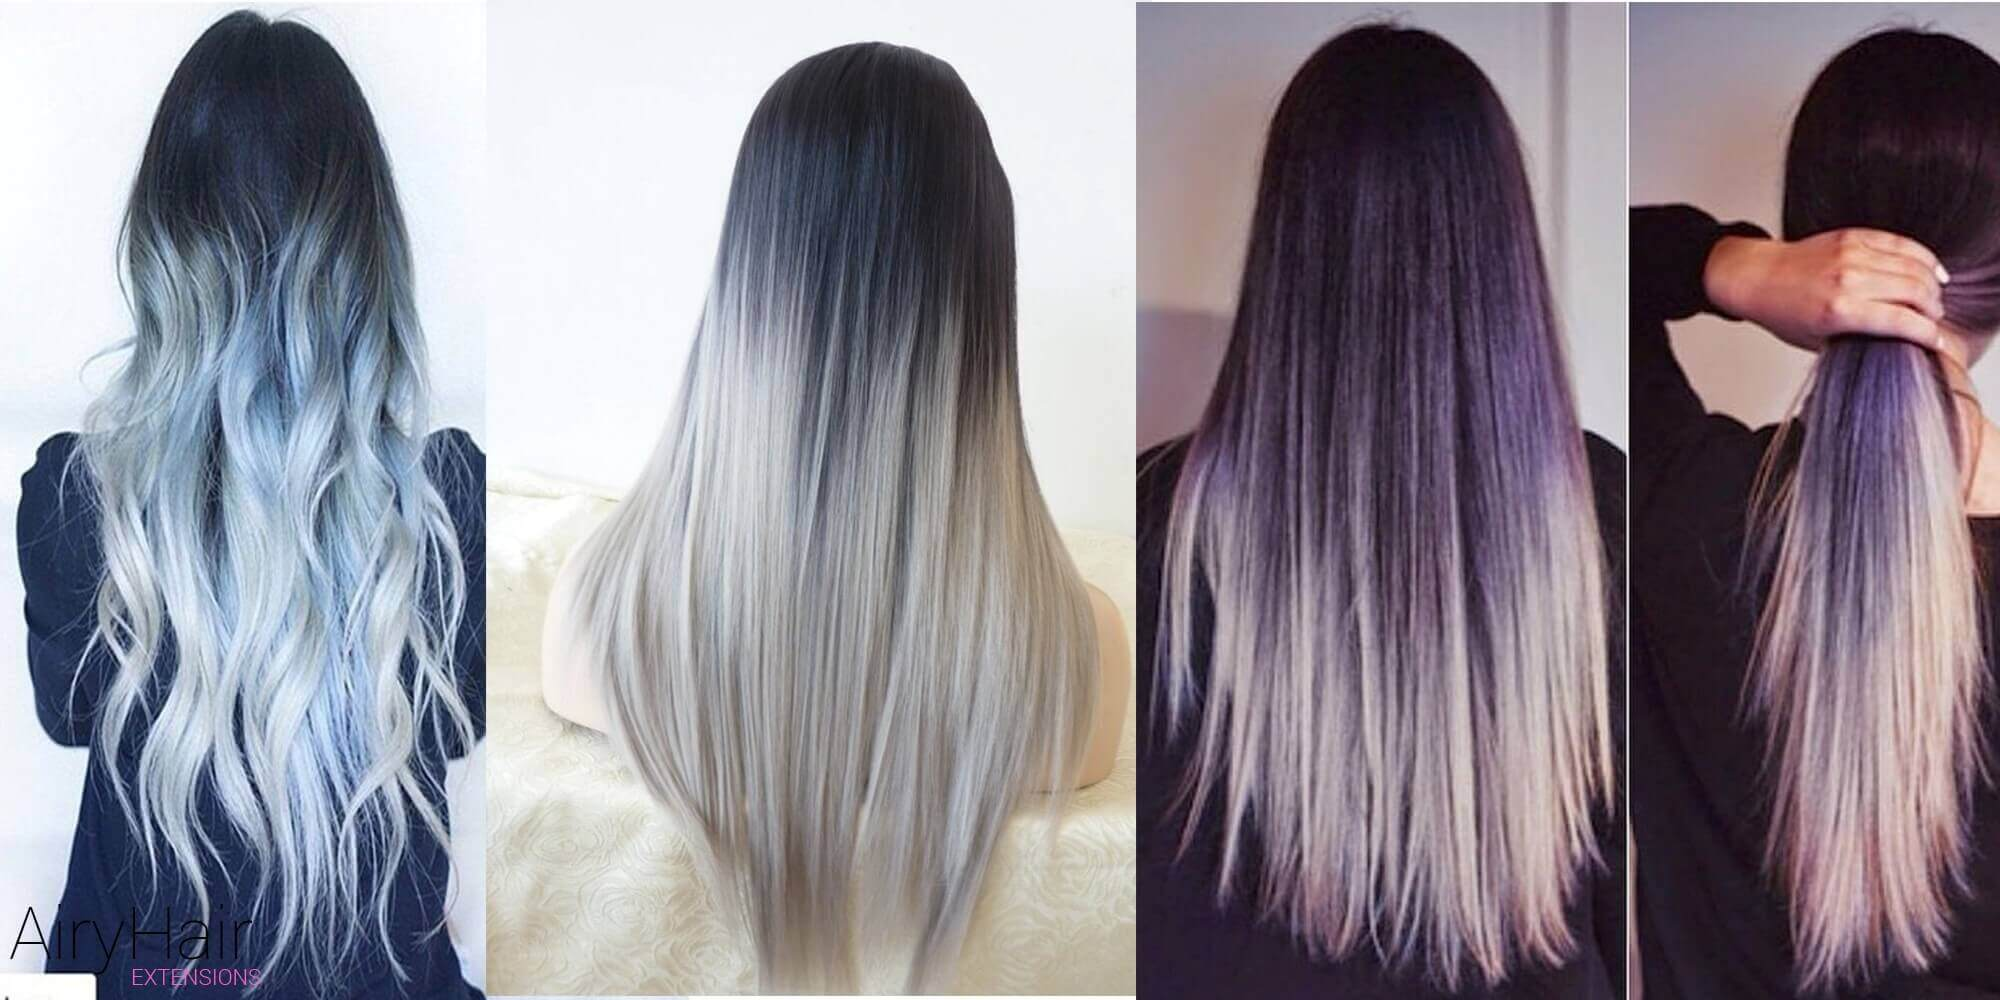 Black Ombre Hairstyles Black Ombre Hairstyles new picture